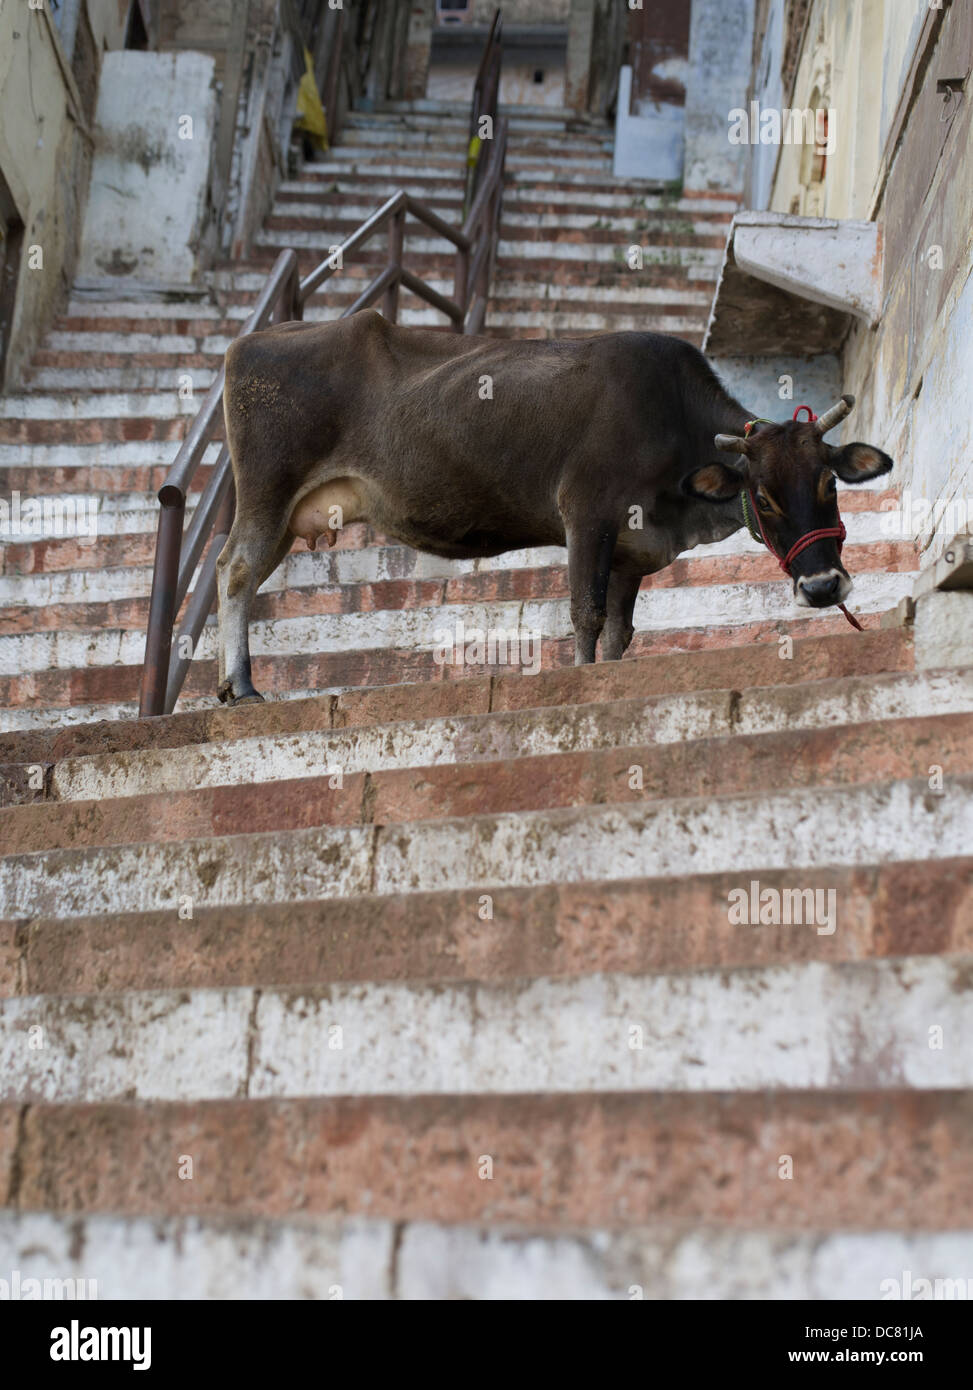 Sacred Cow half way up a flight of stairs on the banks of the Ganges River - Varanasi, India - Stock Image